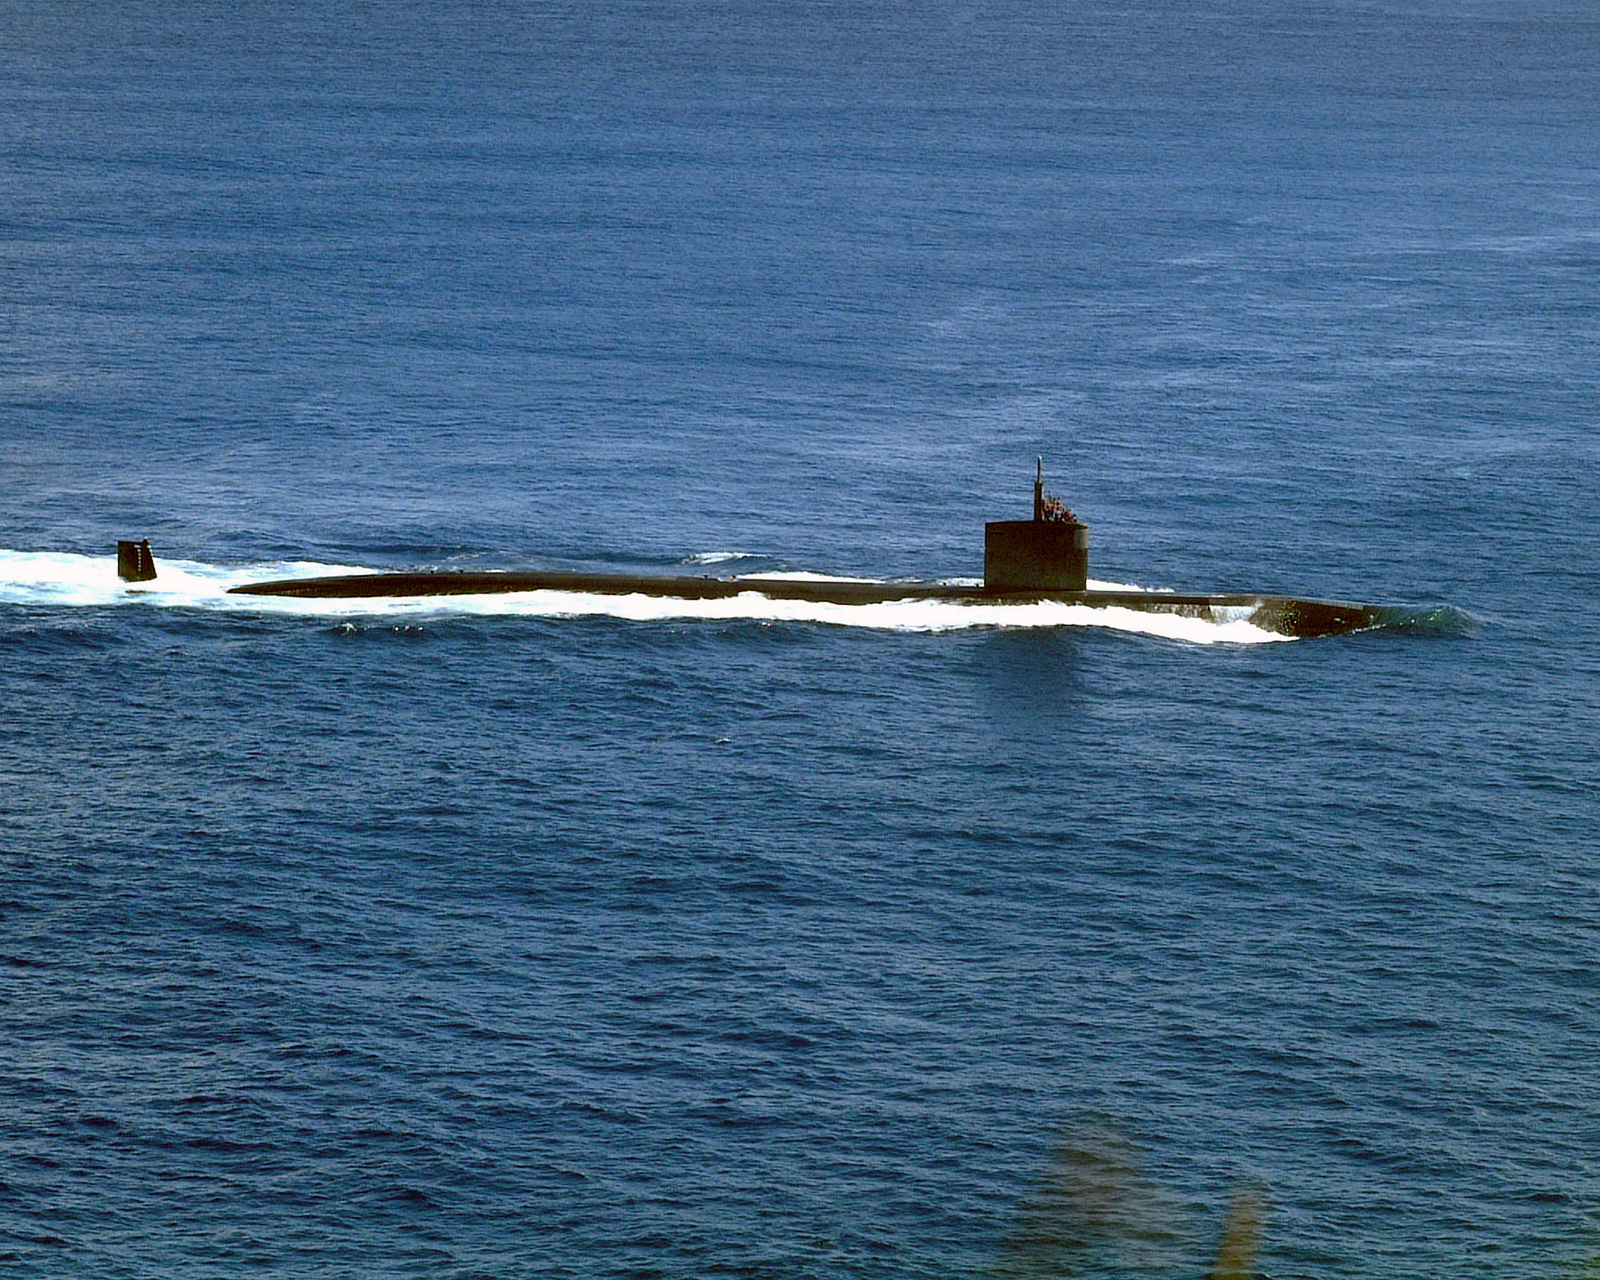 The LOS ANGELES class Attack Submarine USS TUCSON (SSN 770